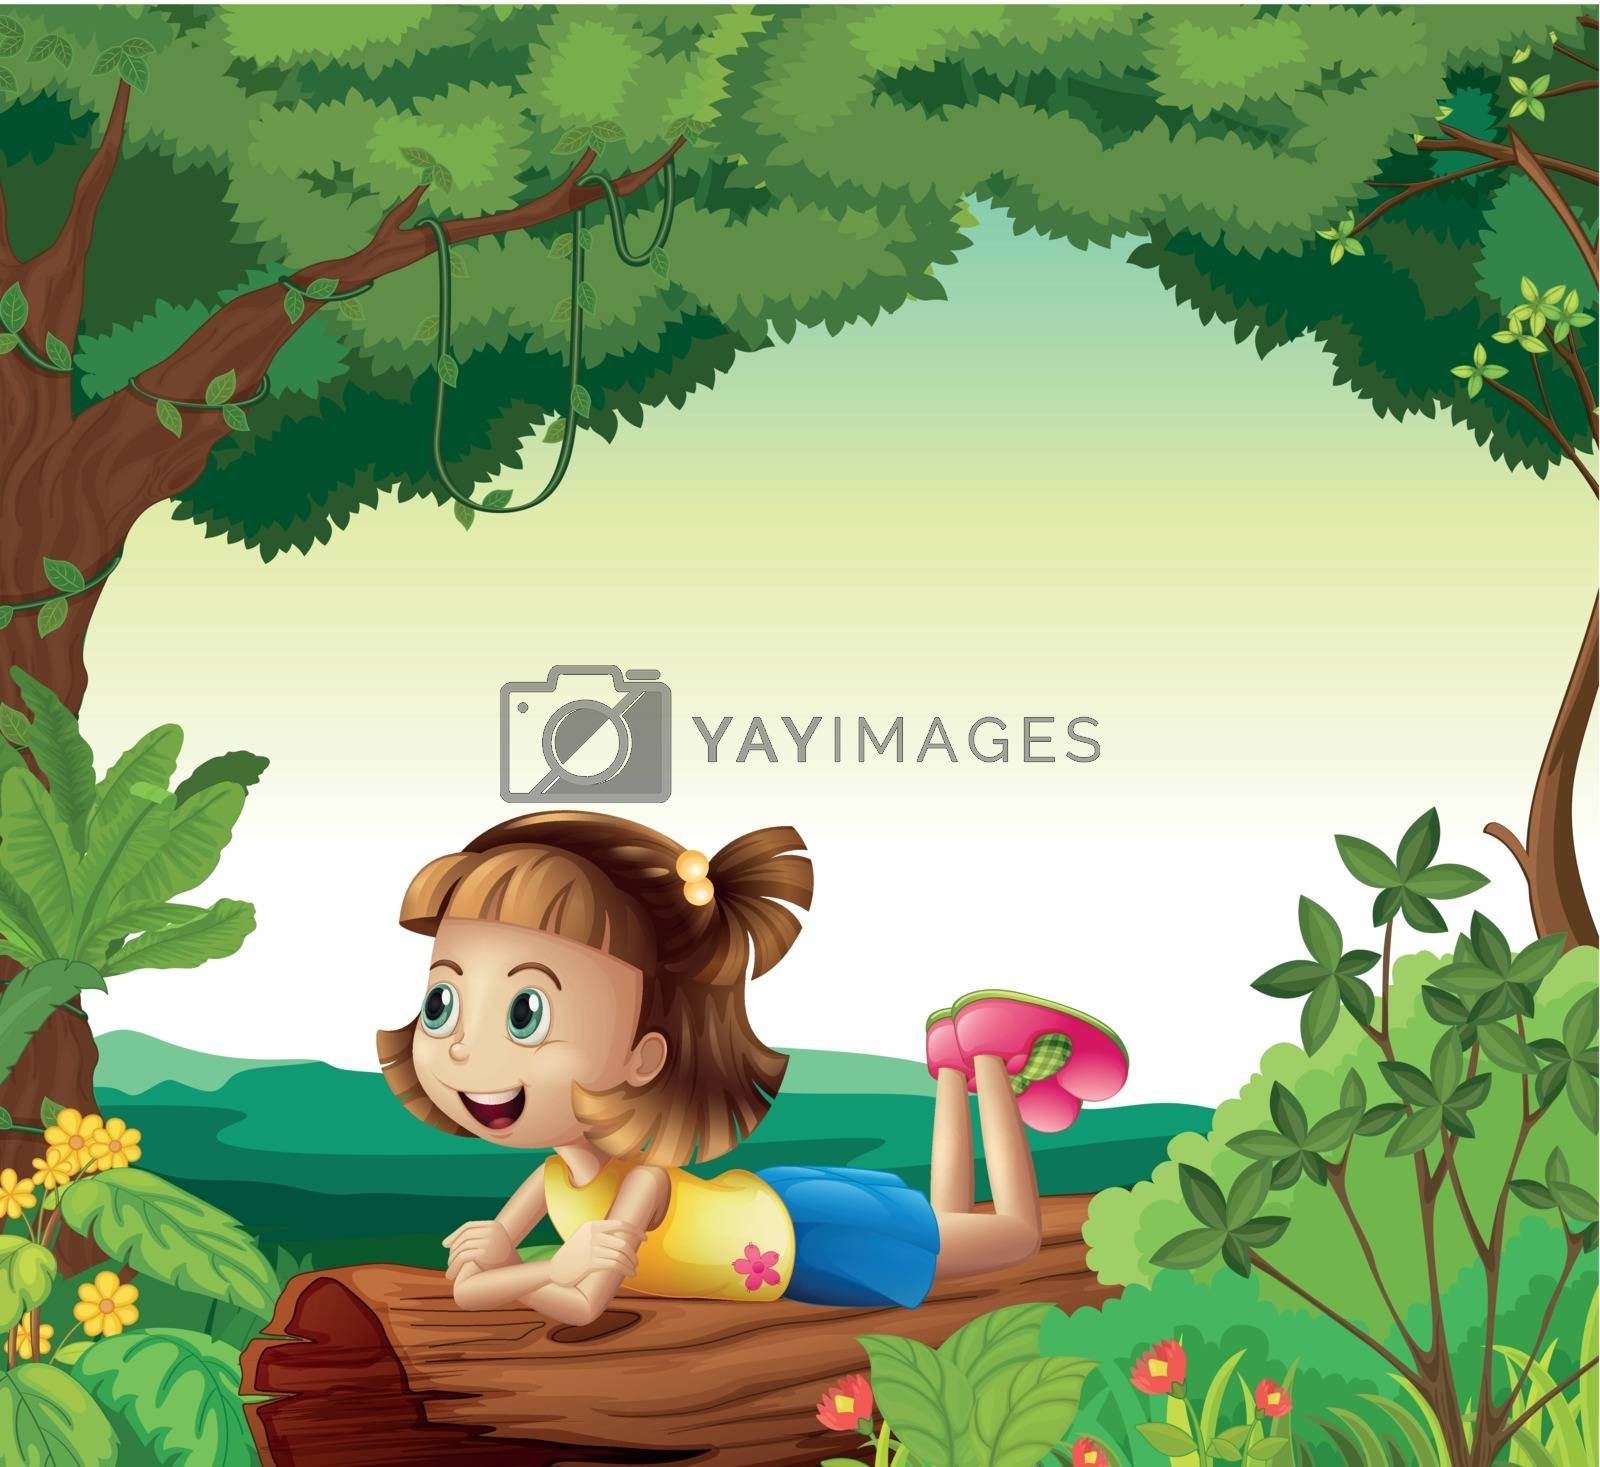 Illustration of a girl lying on a wood in a nature